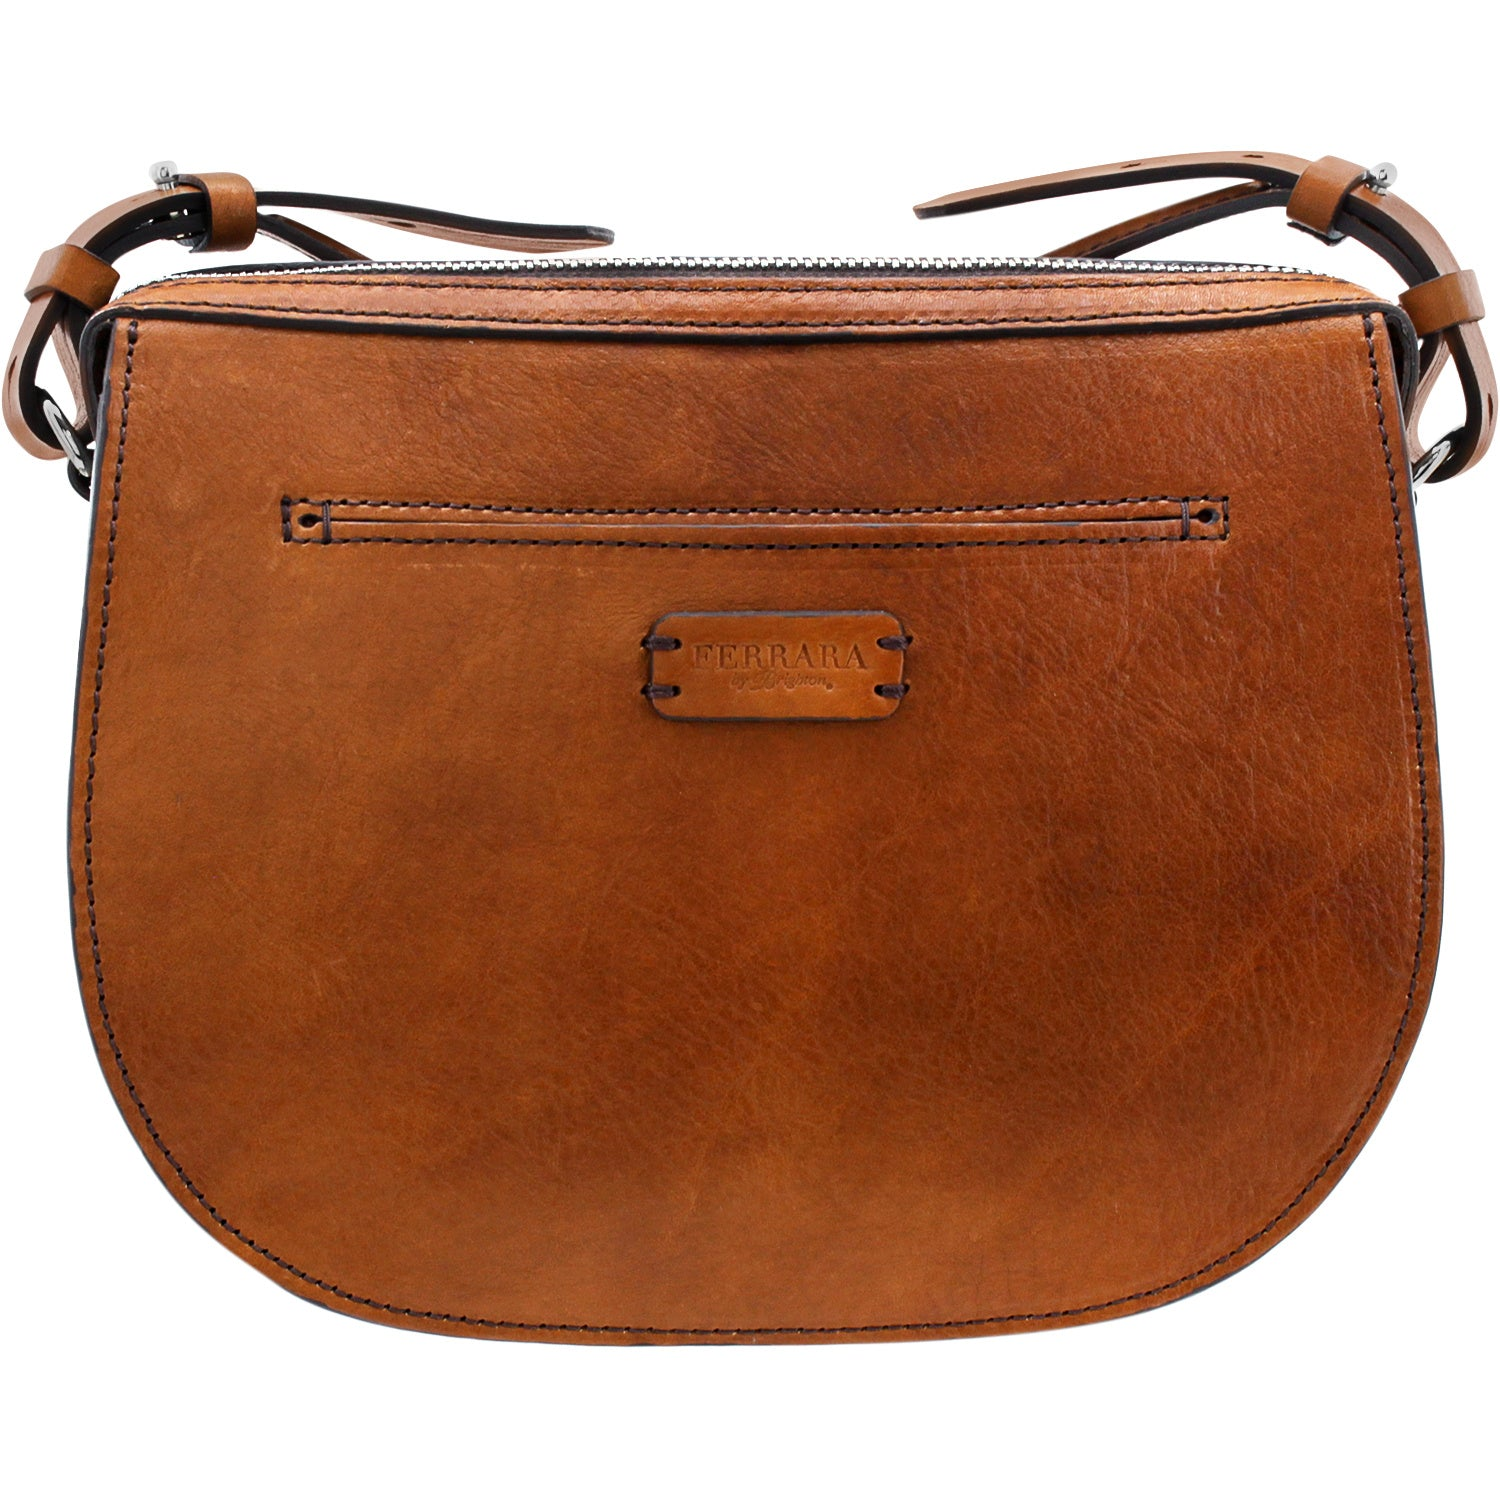 Bordo Saddle Bag